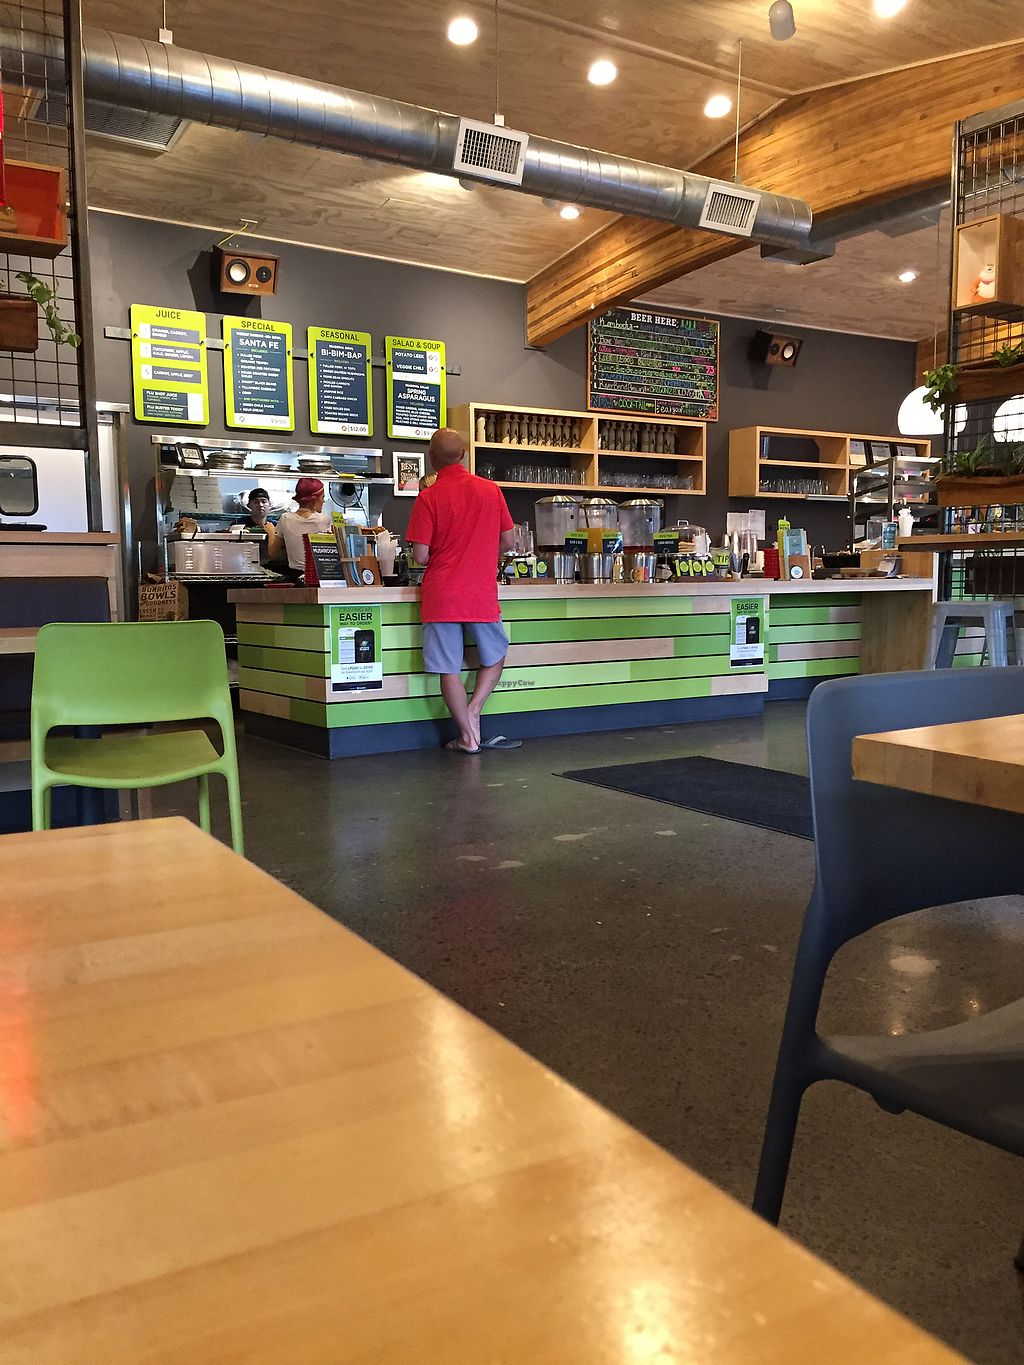 """Photo of Laughing Planet Cafe  by <a href=""""/members/profile/LinnDaugherty"""">LinnDaugherty</a> <br/>inside <br/> June 26, 2017  - <a href='/contact/abuse/image/58981/273476'>Report</a>"""